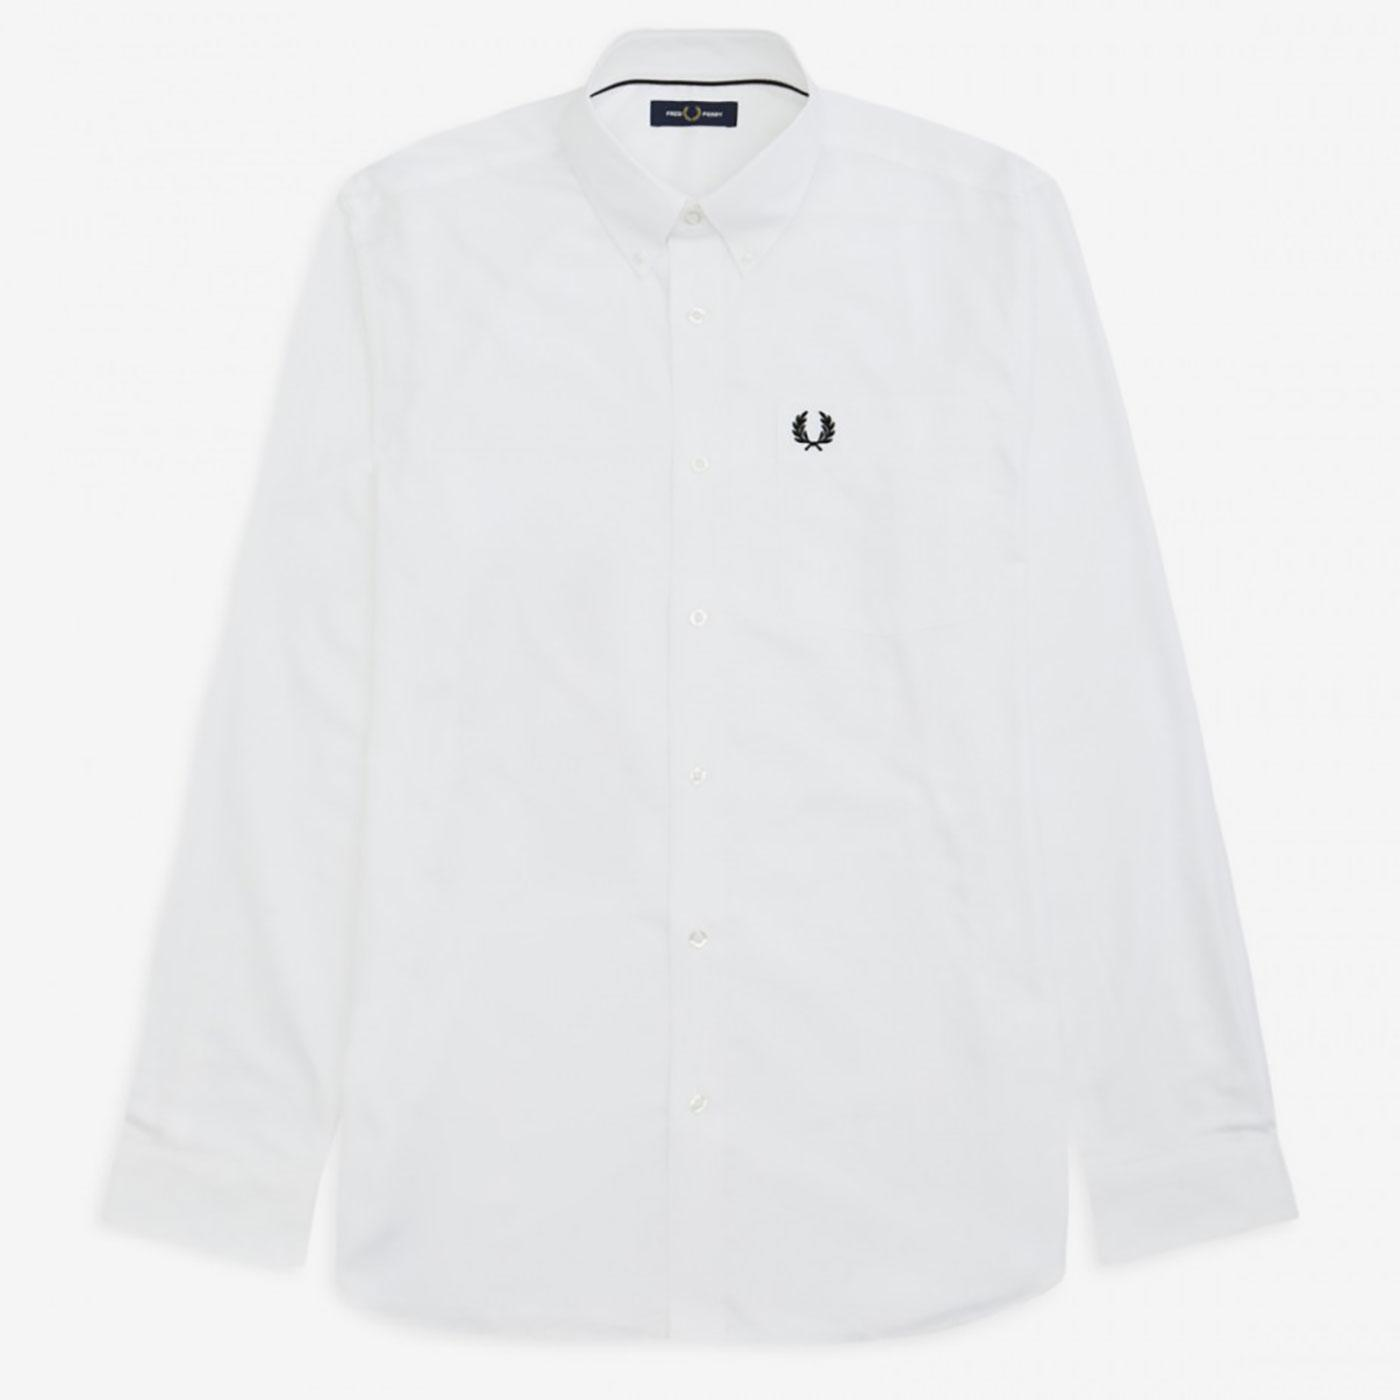 FRED PERRY Retro Mod Button Down Oxford Shirt